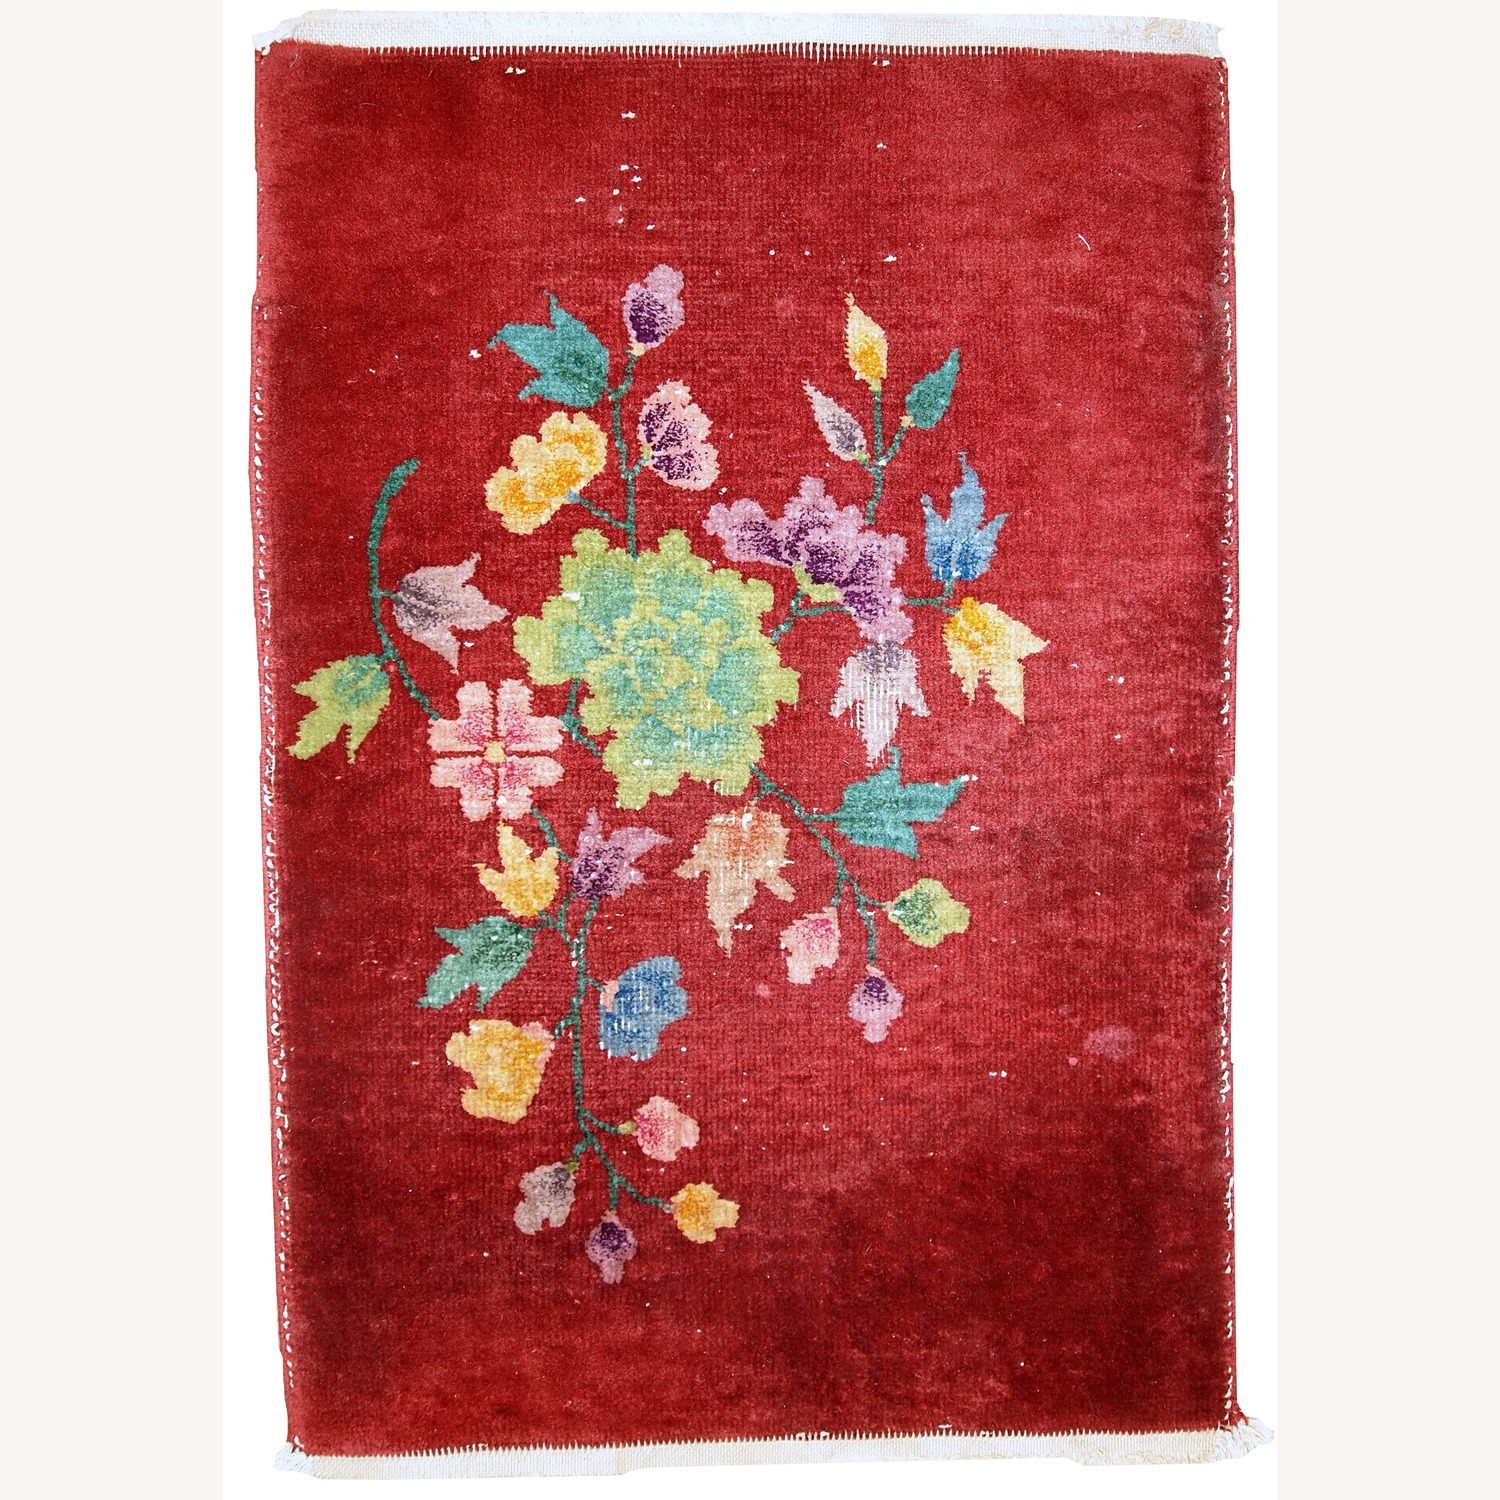 Handmade Antique Art deco Chinese Rug - image-1